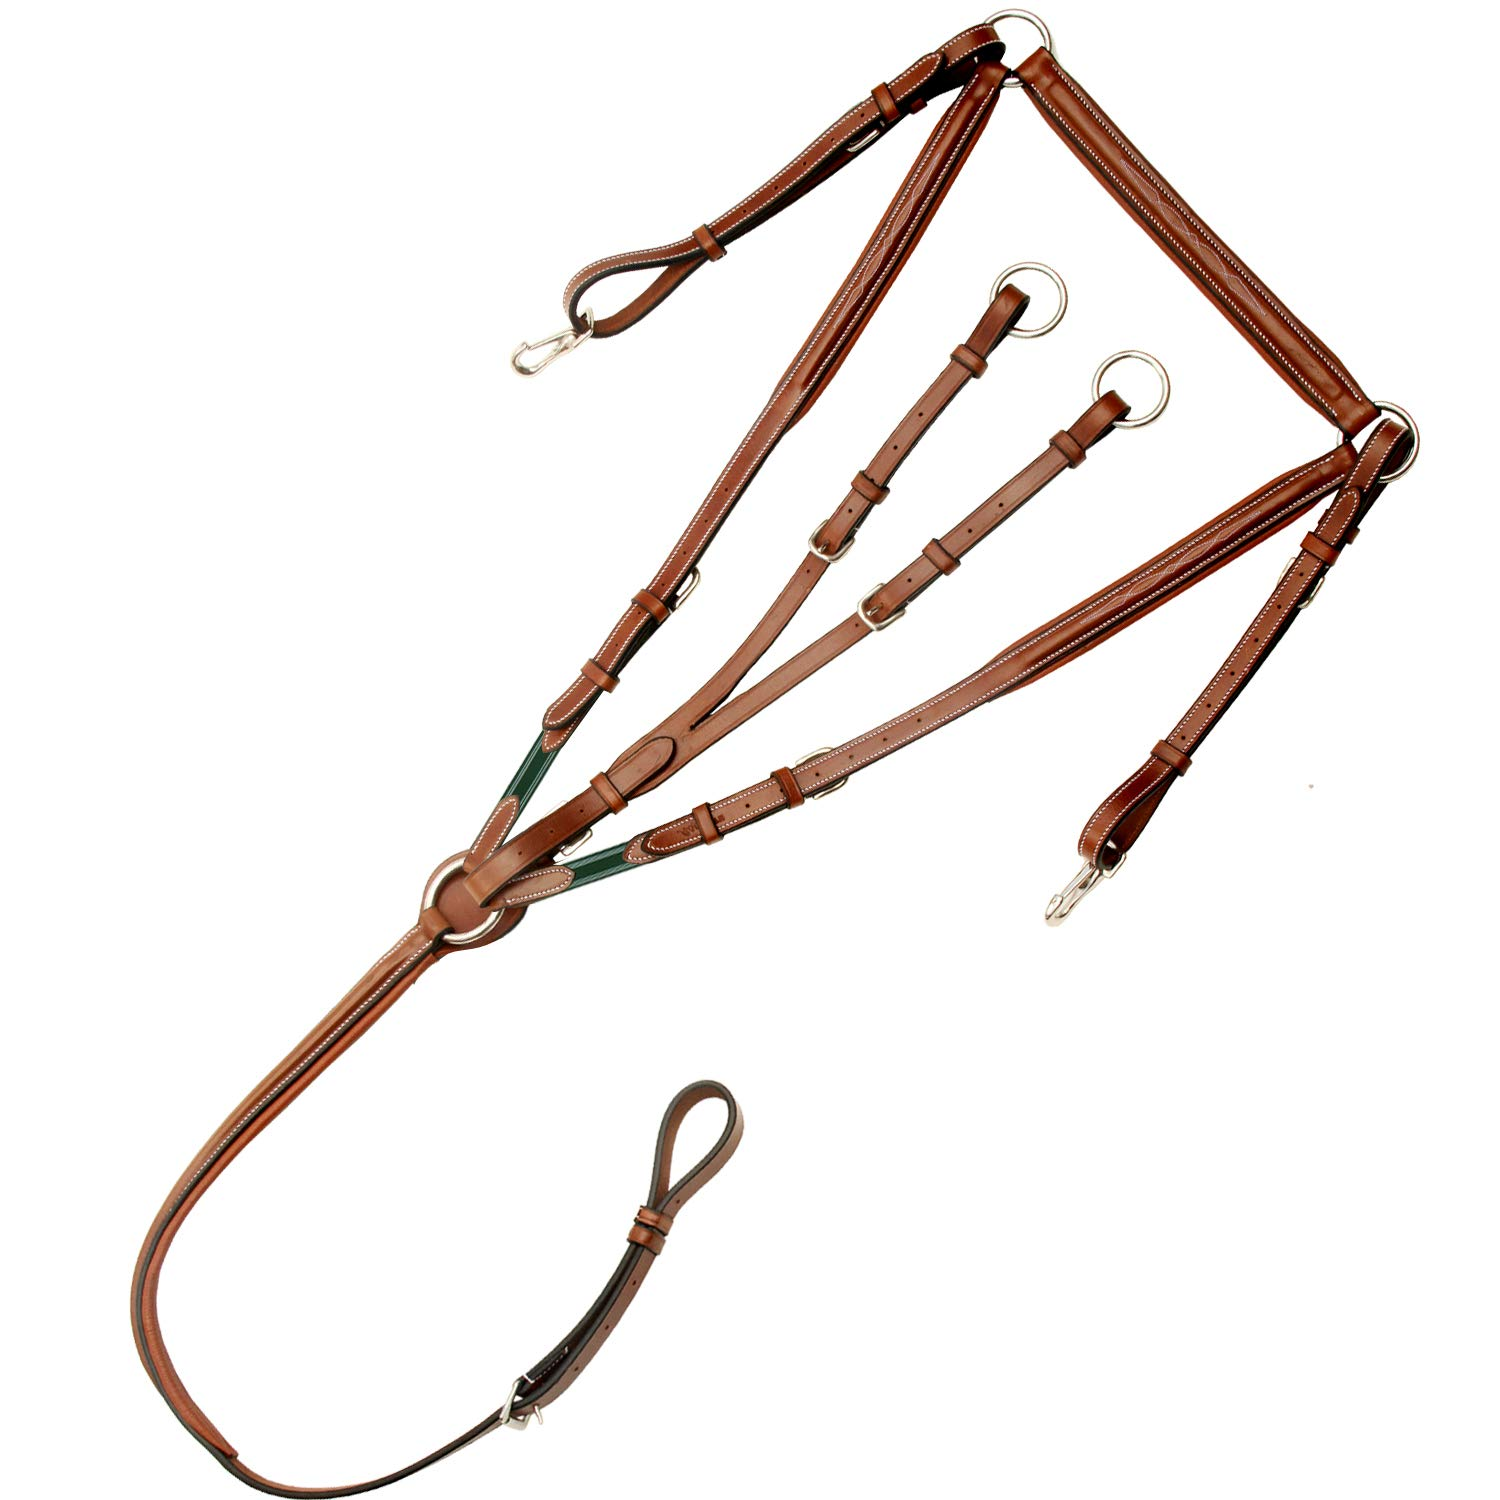 Conker (Tan Brown) Small (Pony) Conker (Tan Brown) Small (Pony) Exion Fancy Square Raised Adjustable Padded Breast Plate with Running Attachment and Stainless Steel Buckles   Green Elastic with White Lines   Conker   Pony